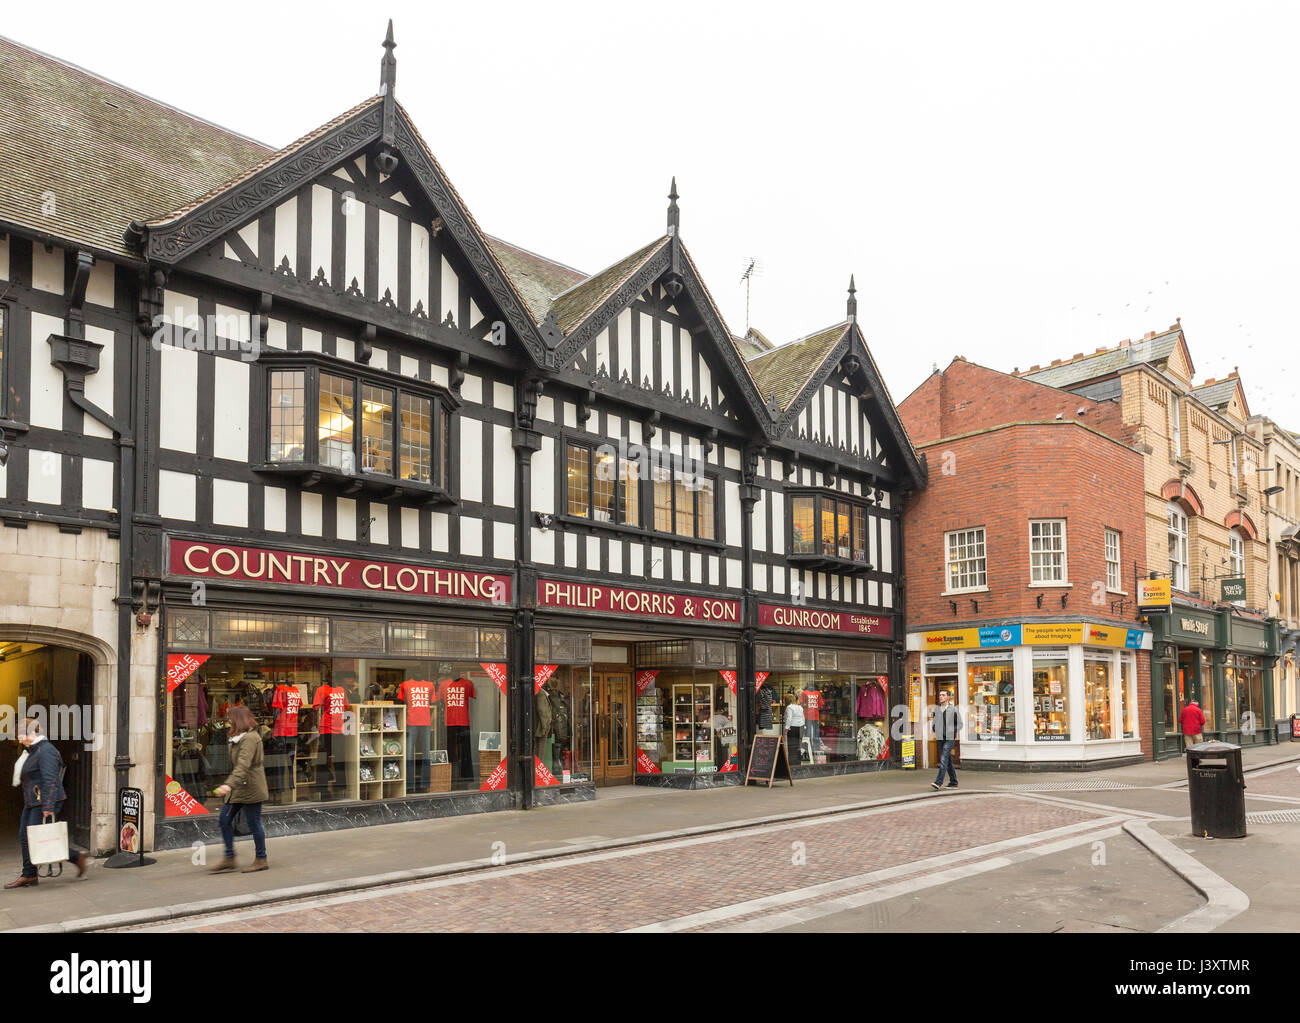 Shopping street with timbered buildings, Hereford, England, UK - Stock Image